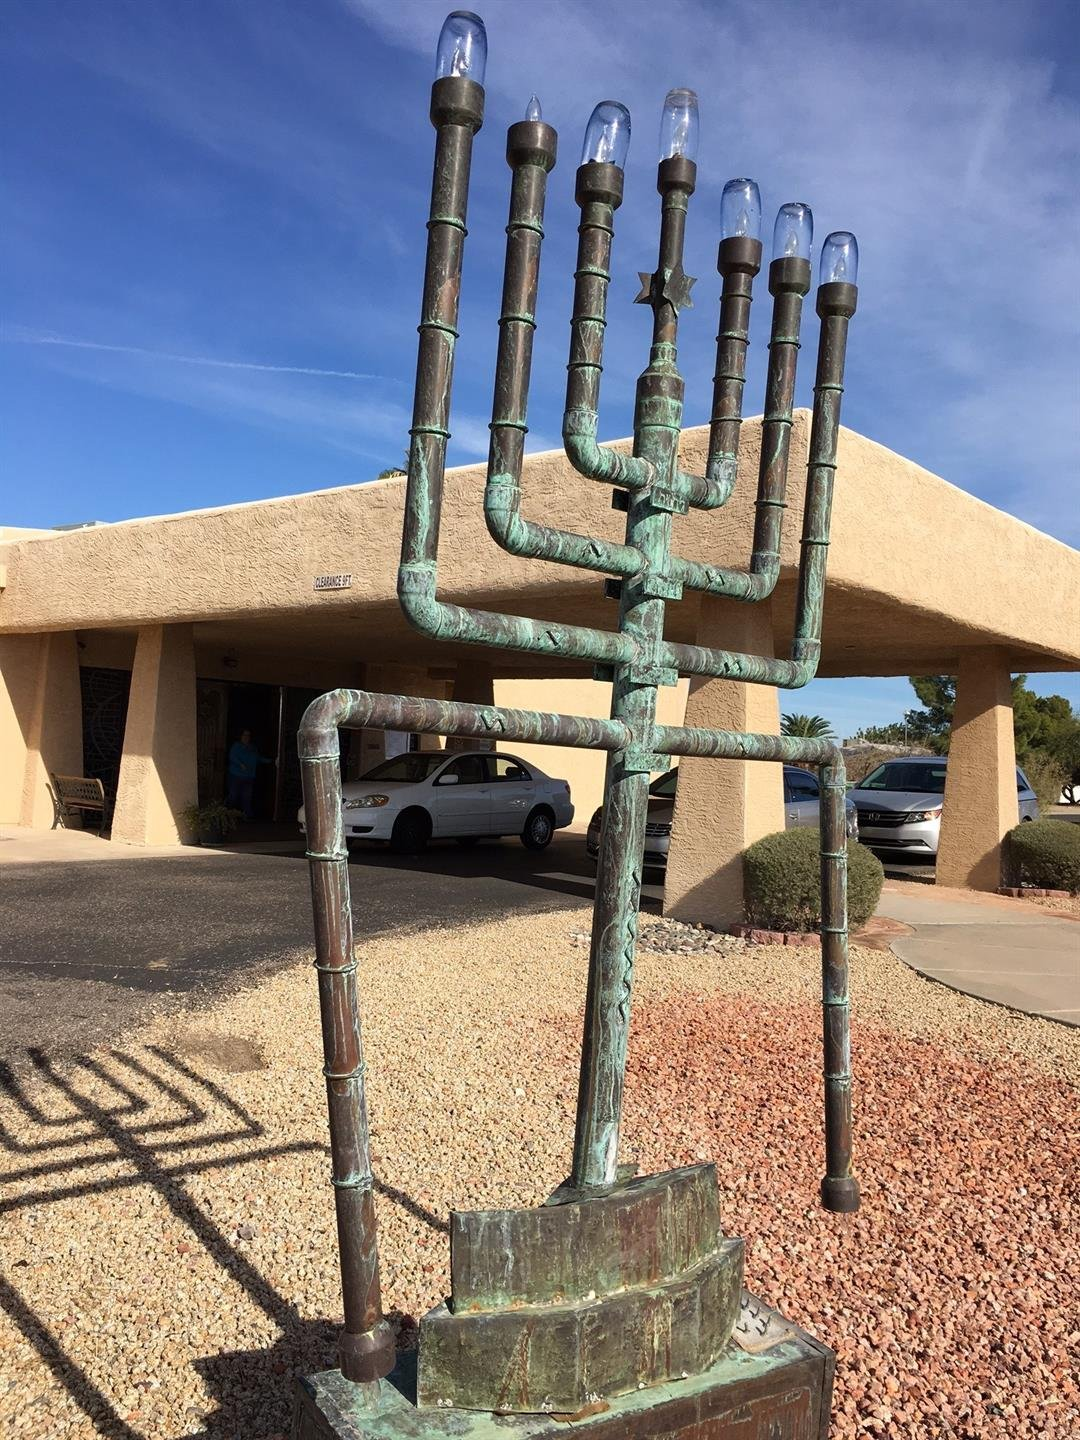 Vandals damaged Menorah at Temple Beth Shalom in Sun City. (Source: 3TV/CBS 5)